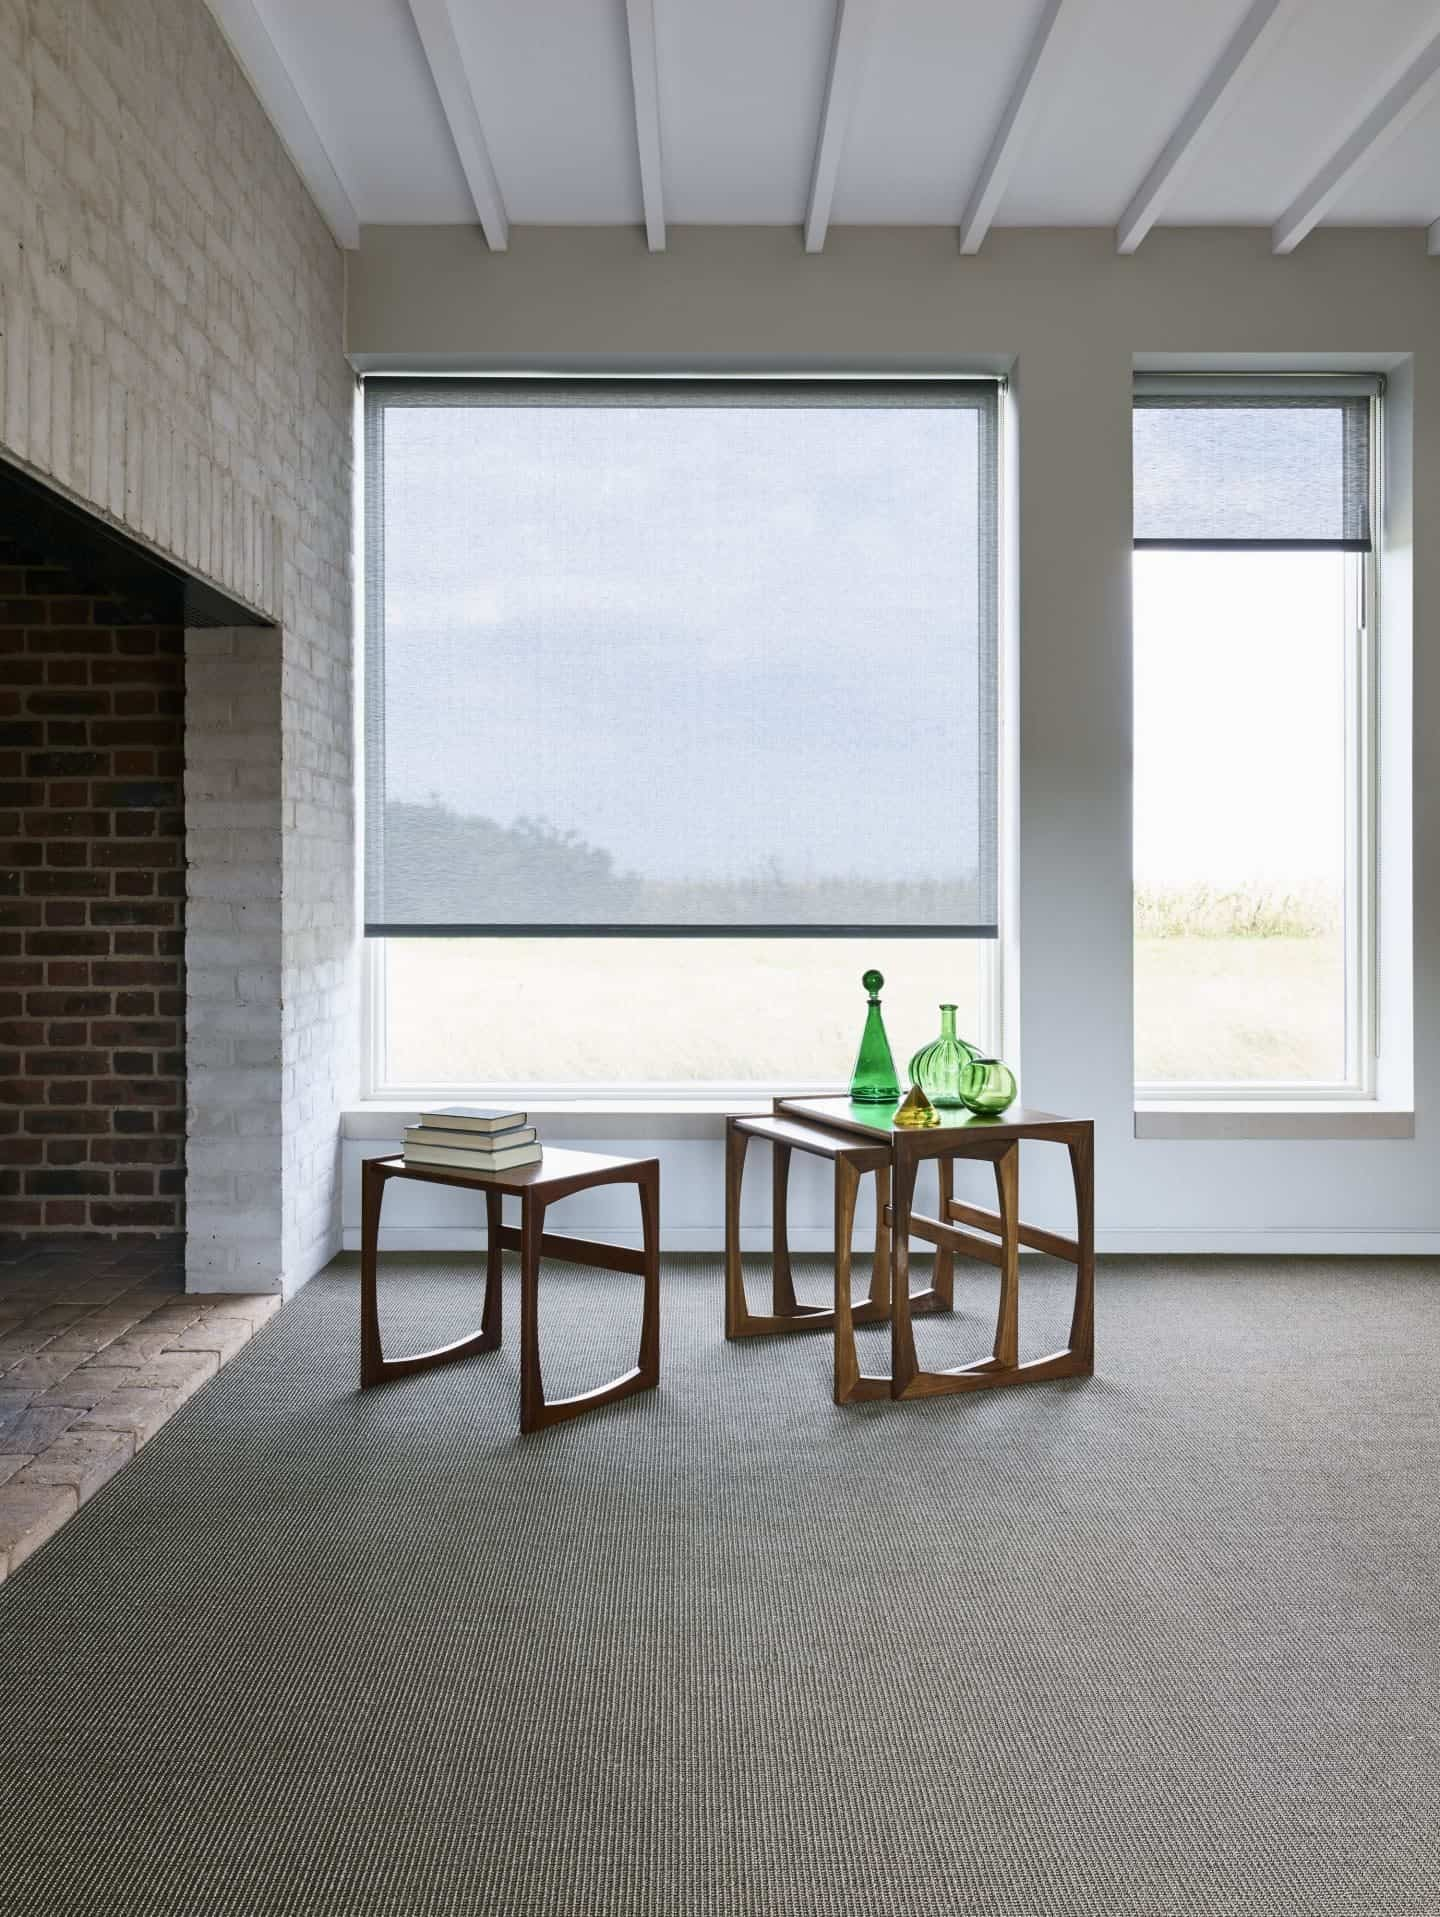 Natural Flooring by Kersaint Cobb - Sisal Carpet - Boucle Artist - Monet